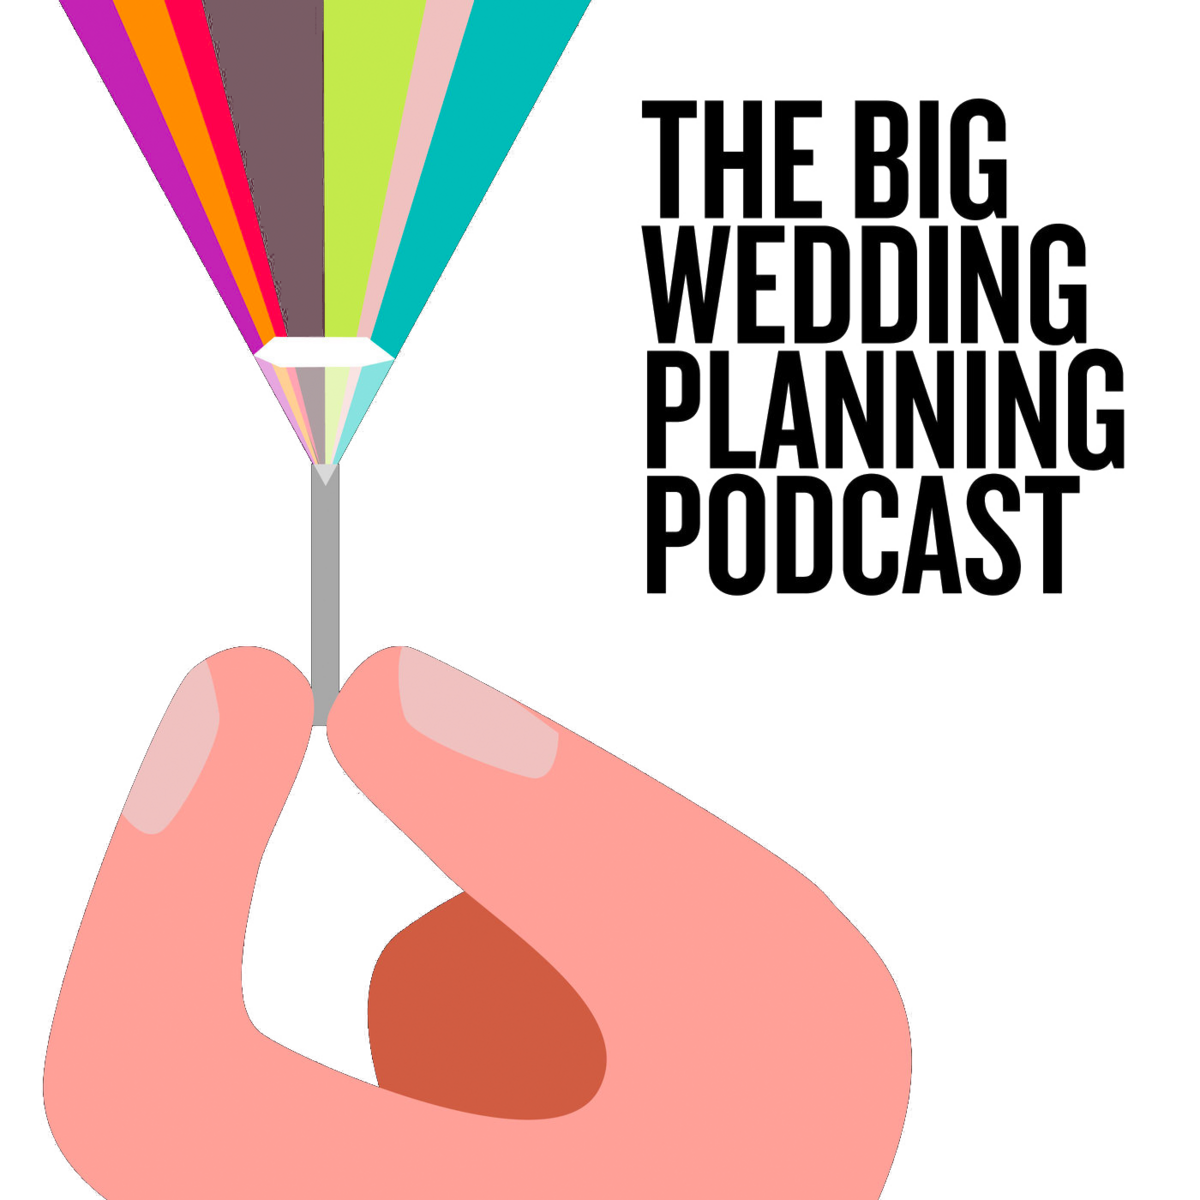 the big wedding planning podcast logo